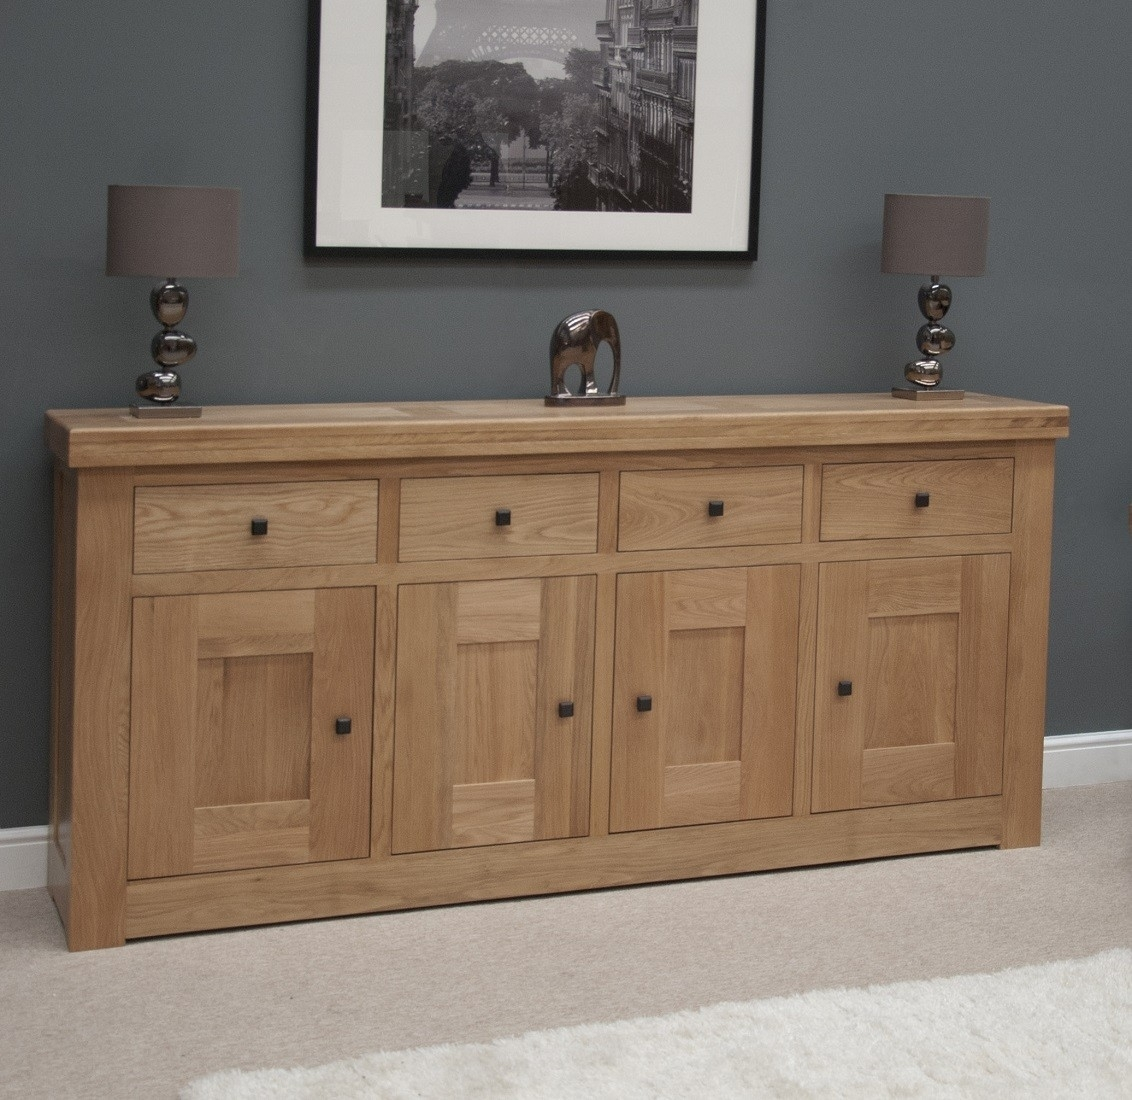 French Bordeaux Oak Extra Large 4 Door Sideboard | Oak Furniture Uk regarding Vintage Finish 4-Door Sideboards (Image 7 of 30)